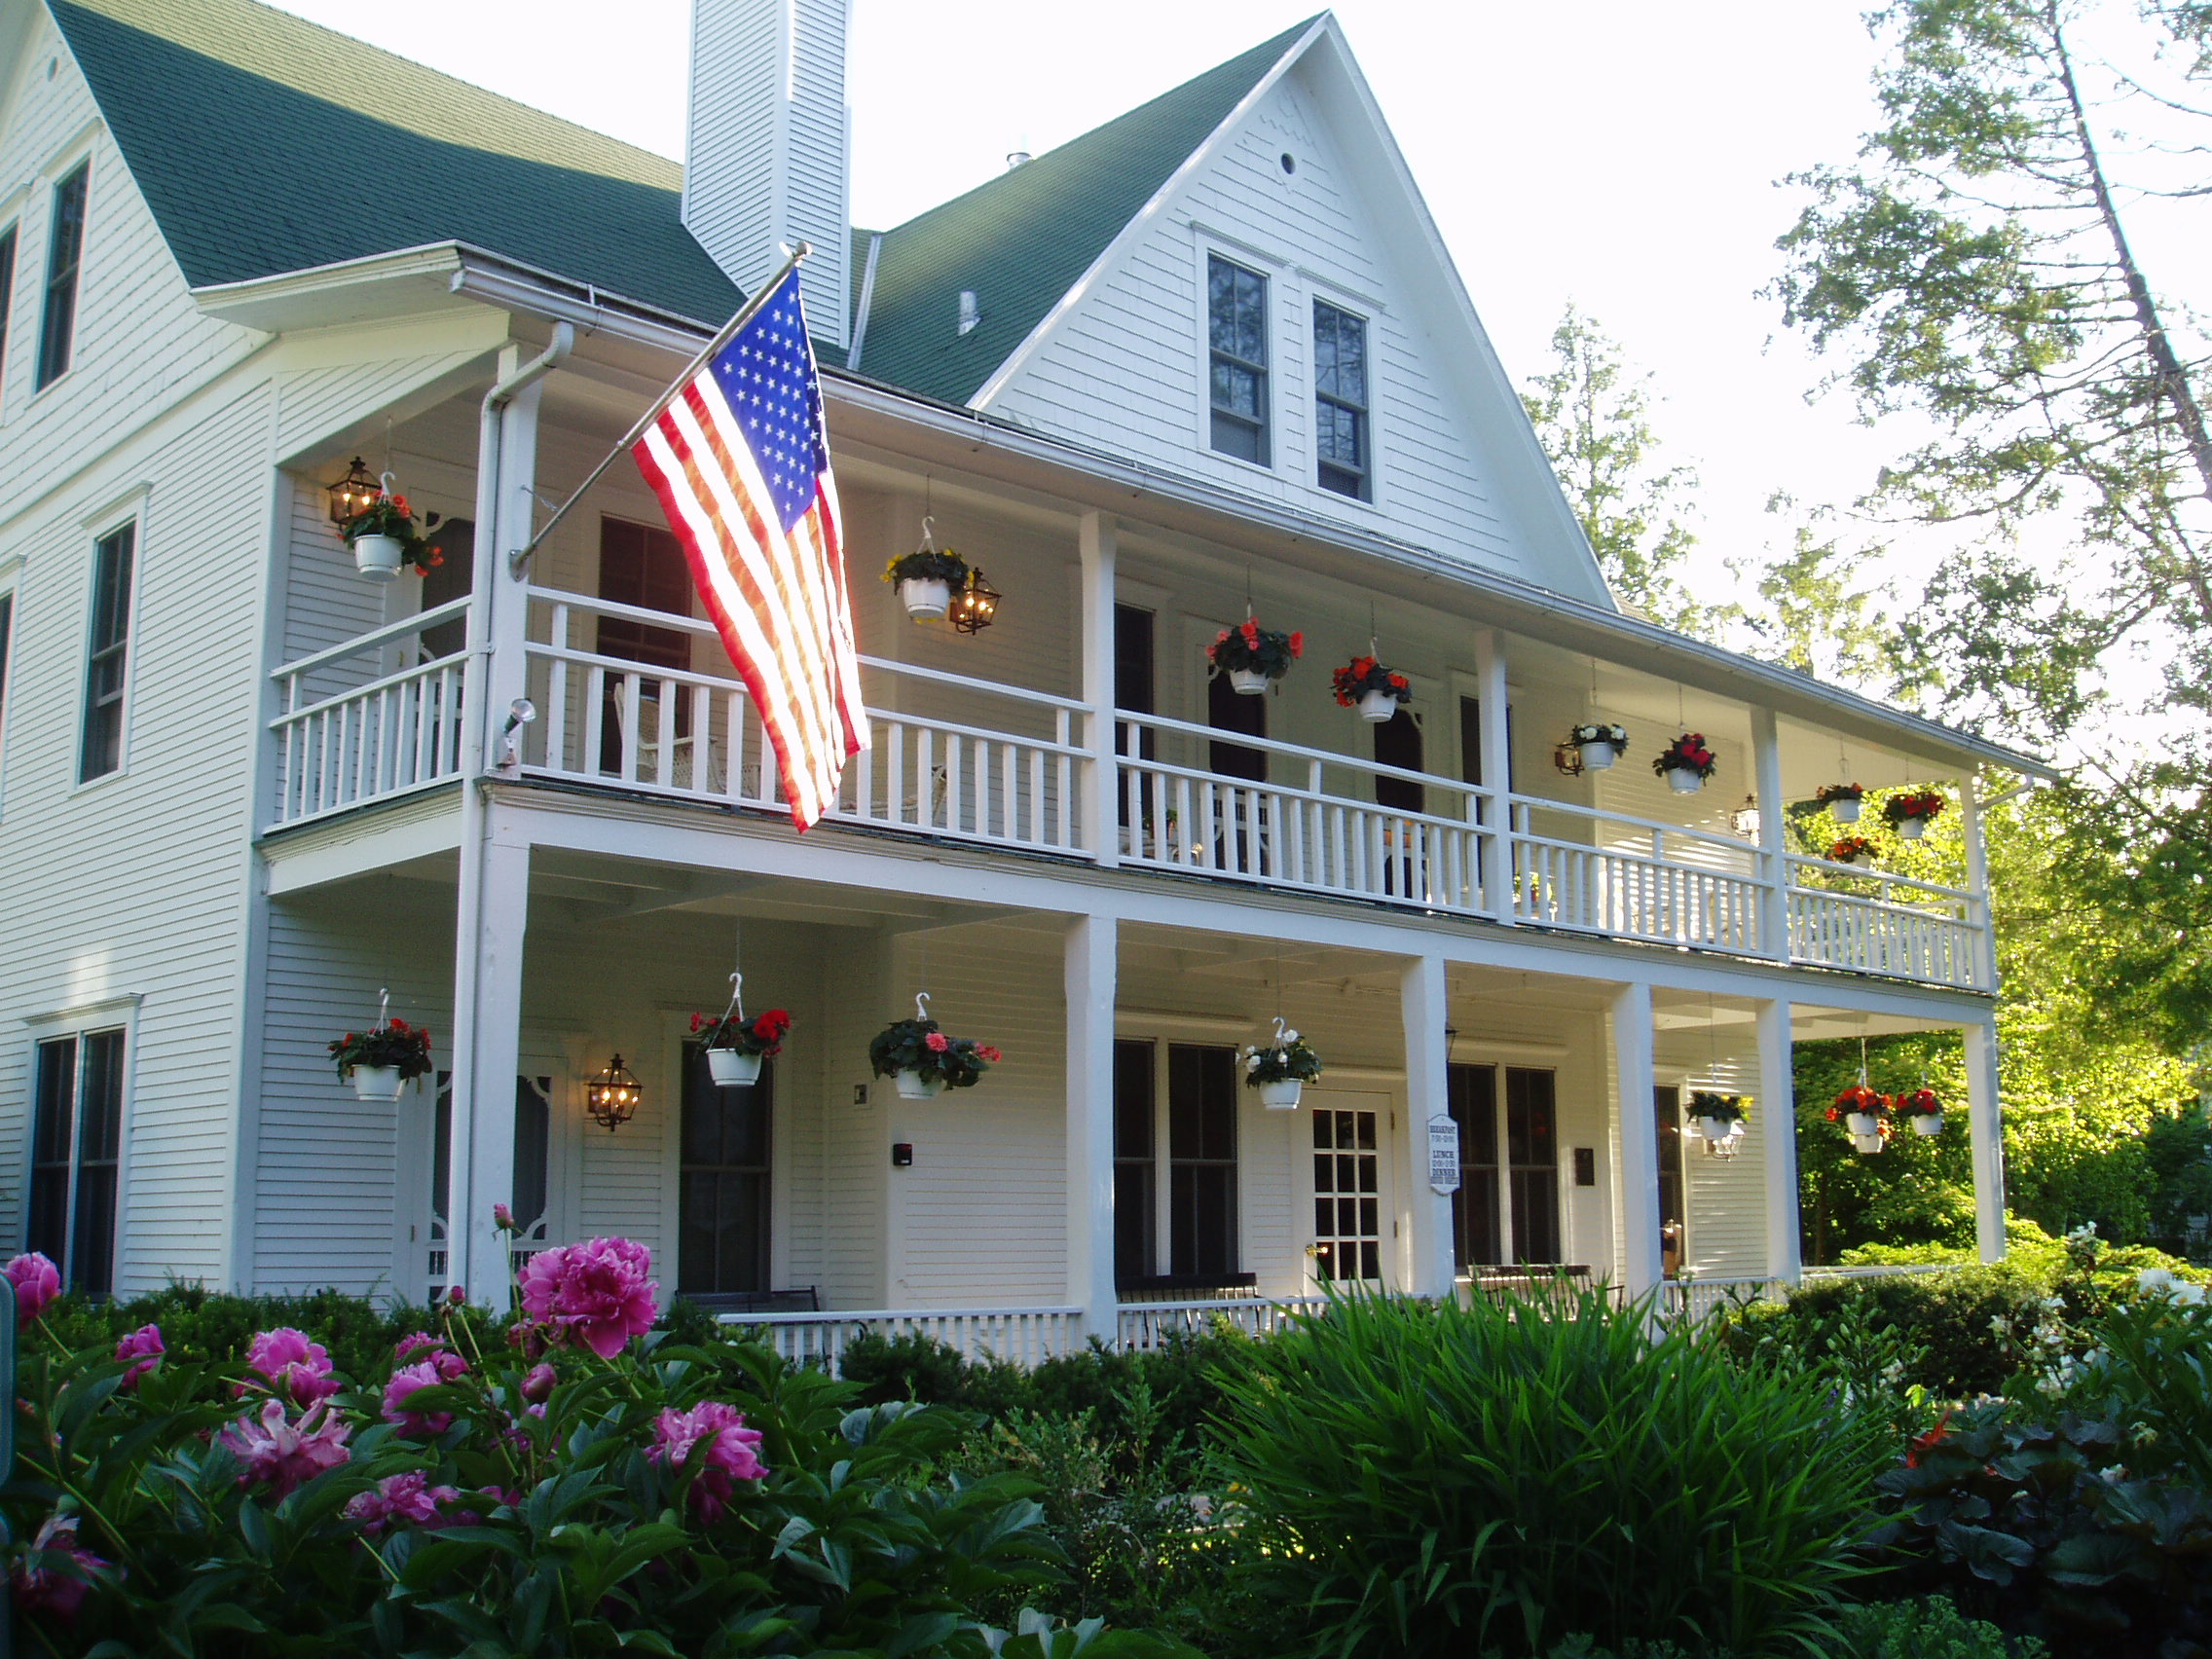 White gull inn named a top hotel in the midwest by cond for Door county hotels fish creek